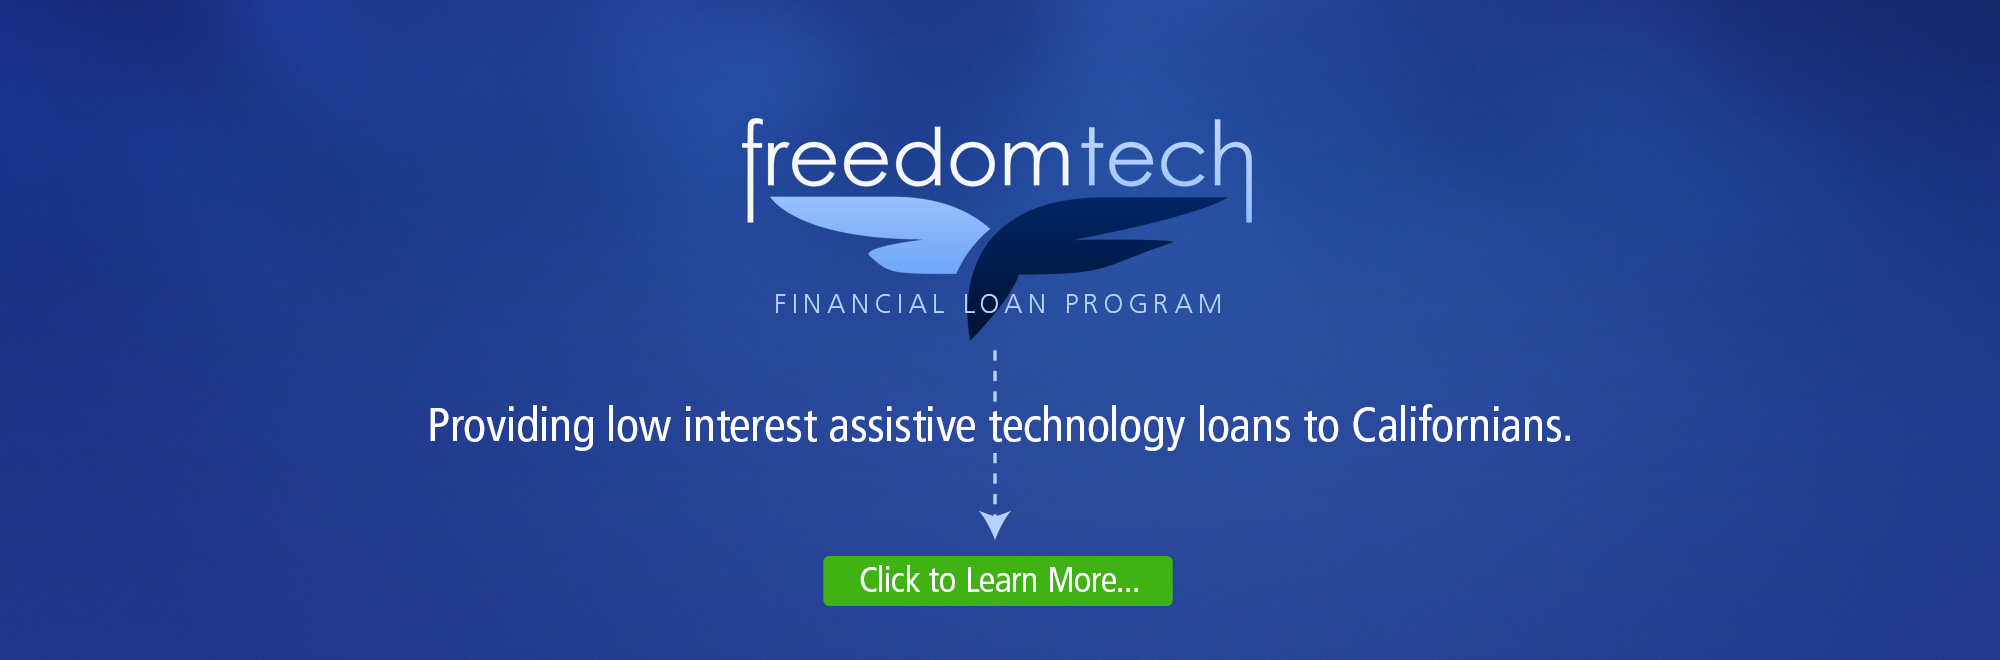 Banner of the FreedomTech Financial Loan Program. Providing low interest assistive technology loans to Californians. Click to learn more.